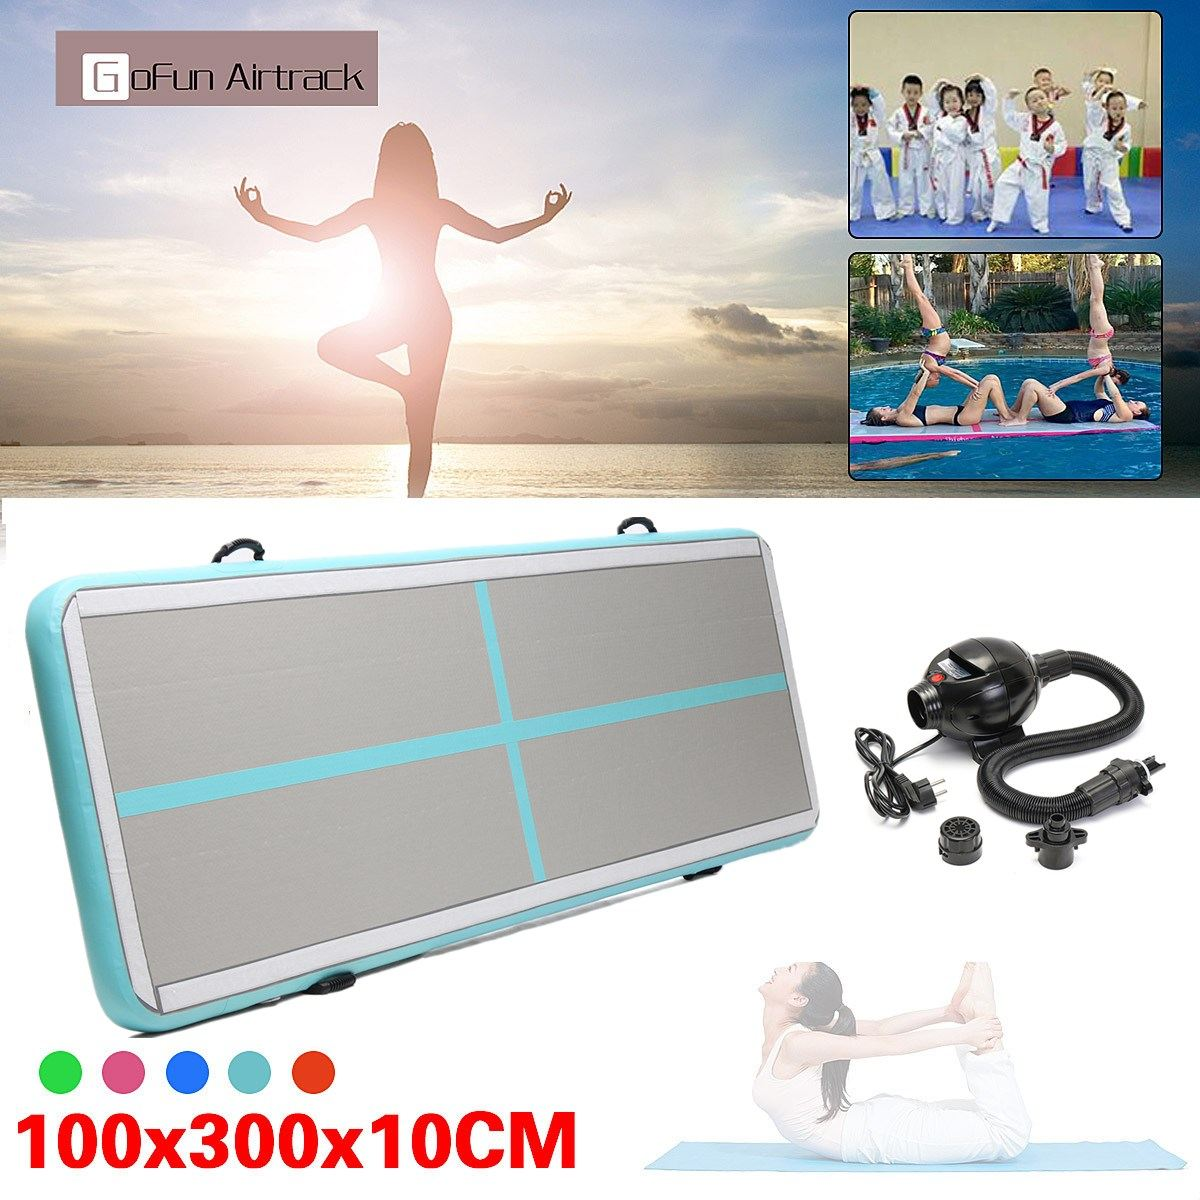 Date 100x300x10 cm Gonflable Linge Piste Trampoline Air Piste Taekwondo Gymnastique Gonflable Air Tapis